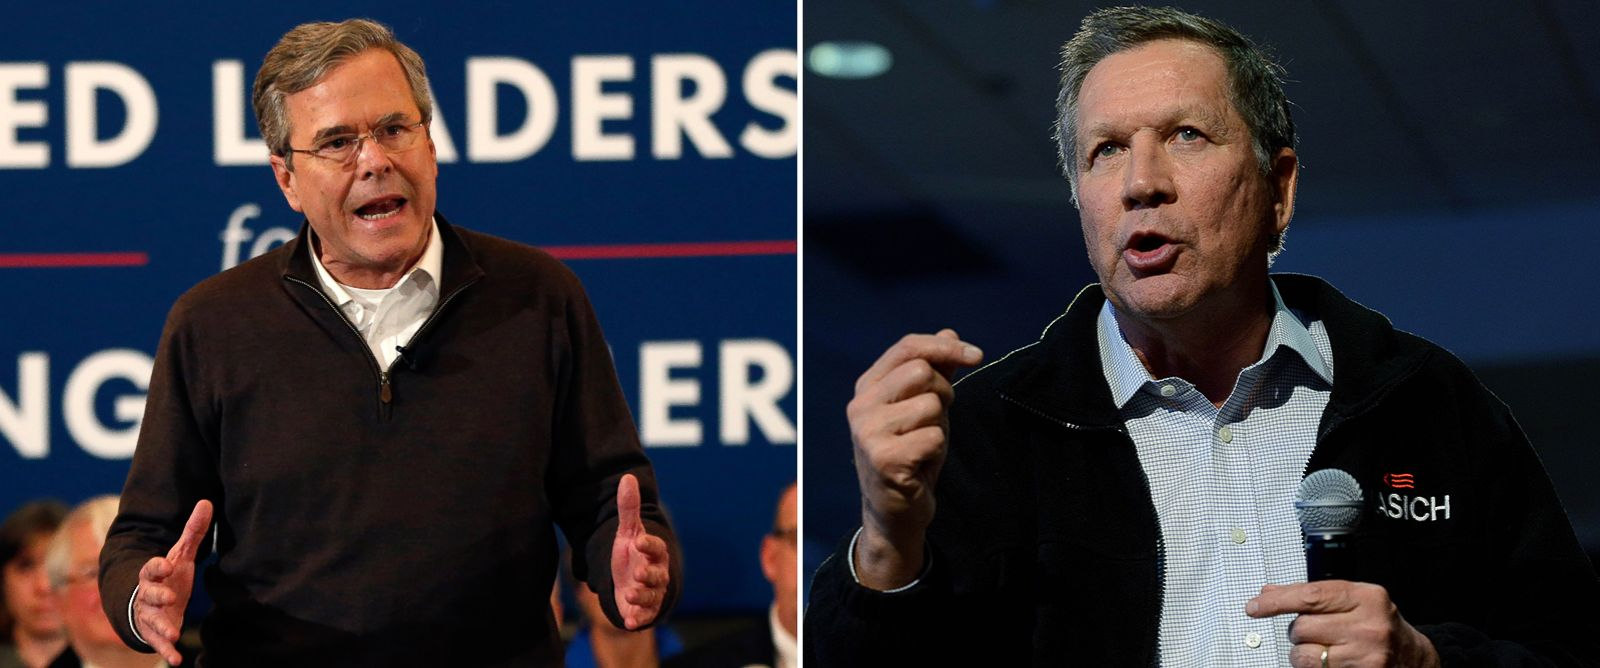 PHOTO: Jeb Bush speaks at an event in Portsmouth, N.H., Feb. 8, 2016 and John Kasich holds a town hall in Concord, N.H. on Feb. 7, 2016.